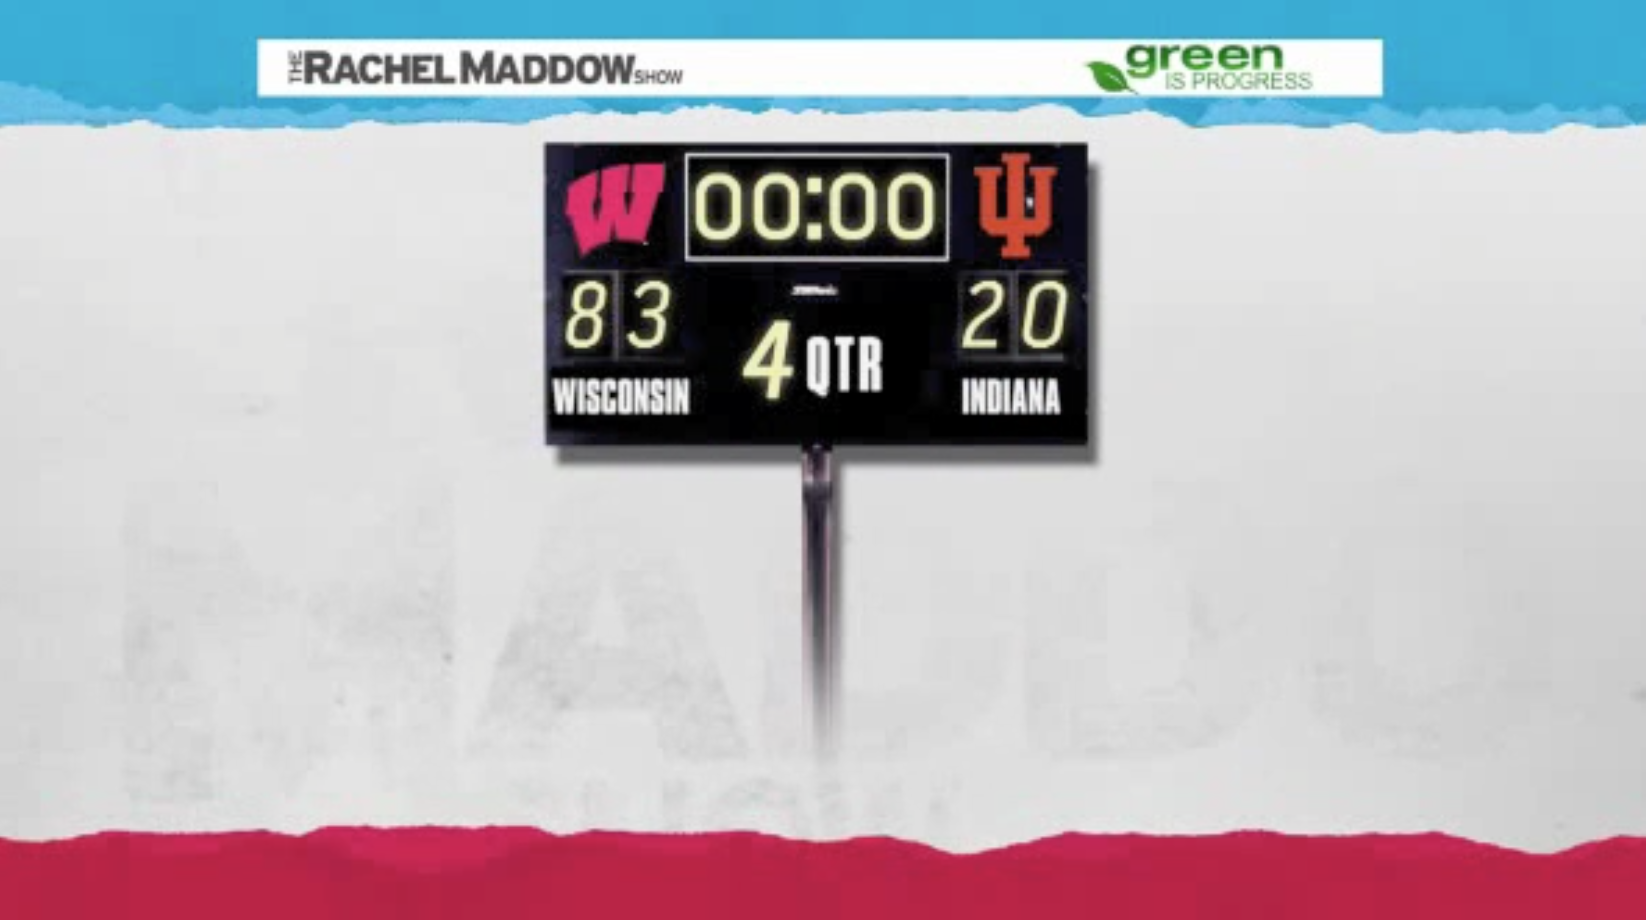 The scoreboard for the game. Wisconsin scored 83 points. Indiana scored 20 points.